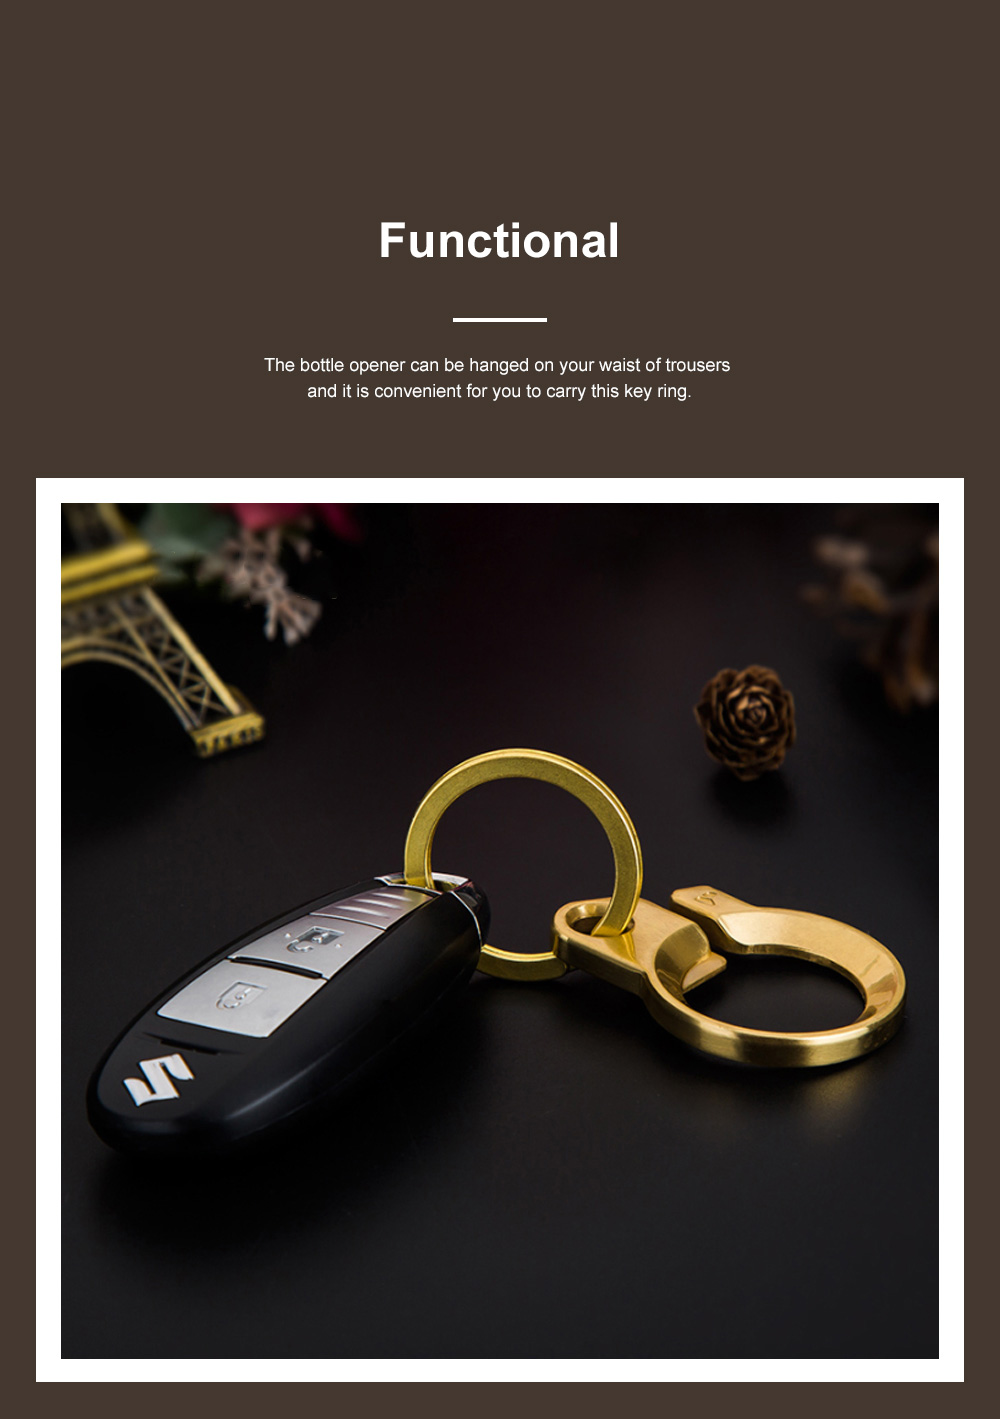 Creative Fancy Delicate Brass Copper Car Key Chain Ring Minimalist Atmosphere Convenient Functional Bottle Opener Waist Key Chain Creative Key Ring Opener 4